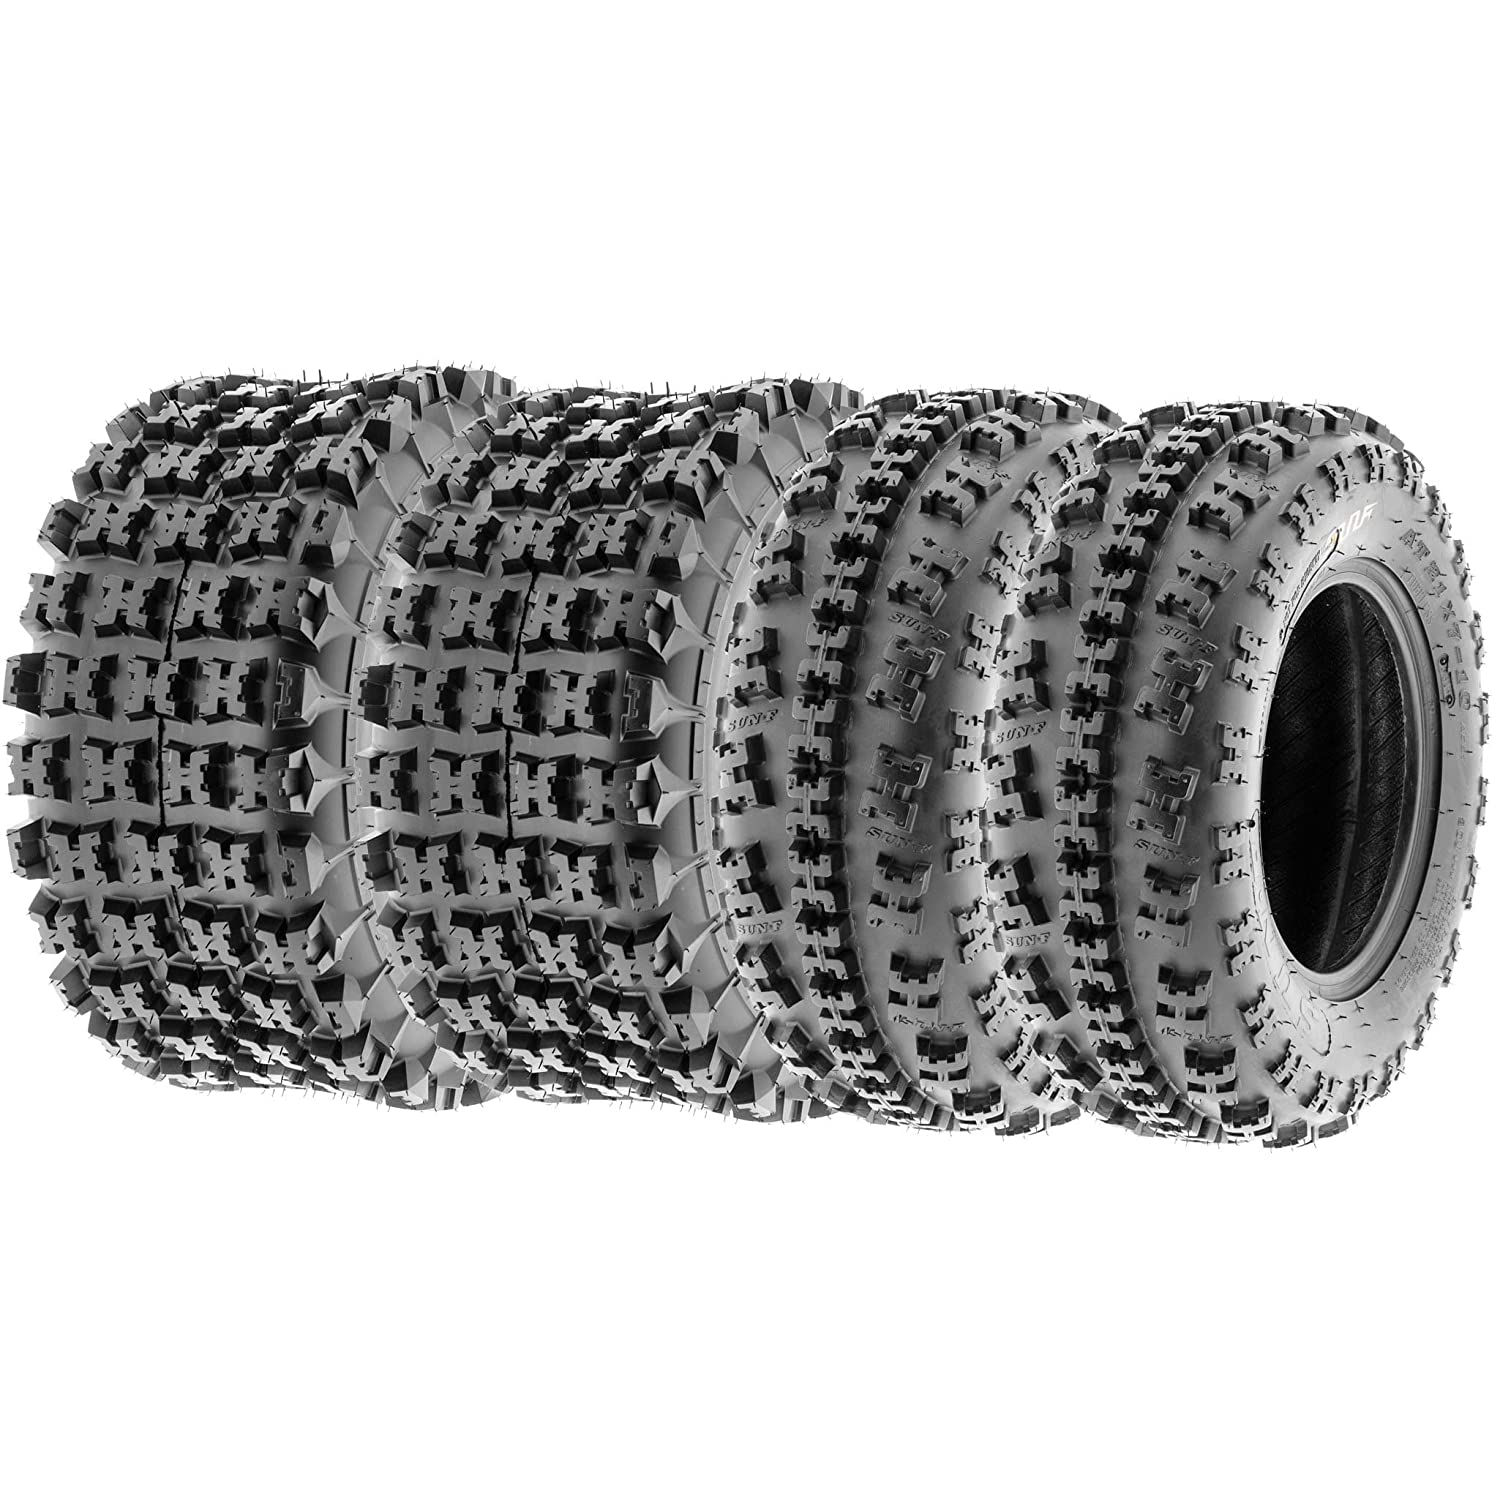 SunF All Terrain Race Replacement ATV UTV 6 Ply Tires 22x7-11 & 22x11-9 Tubeless A027, [Set of 4] LCF1|A027|220711|221109|x4